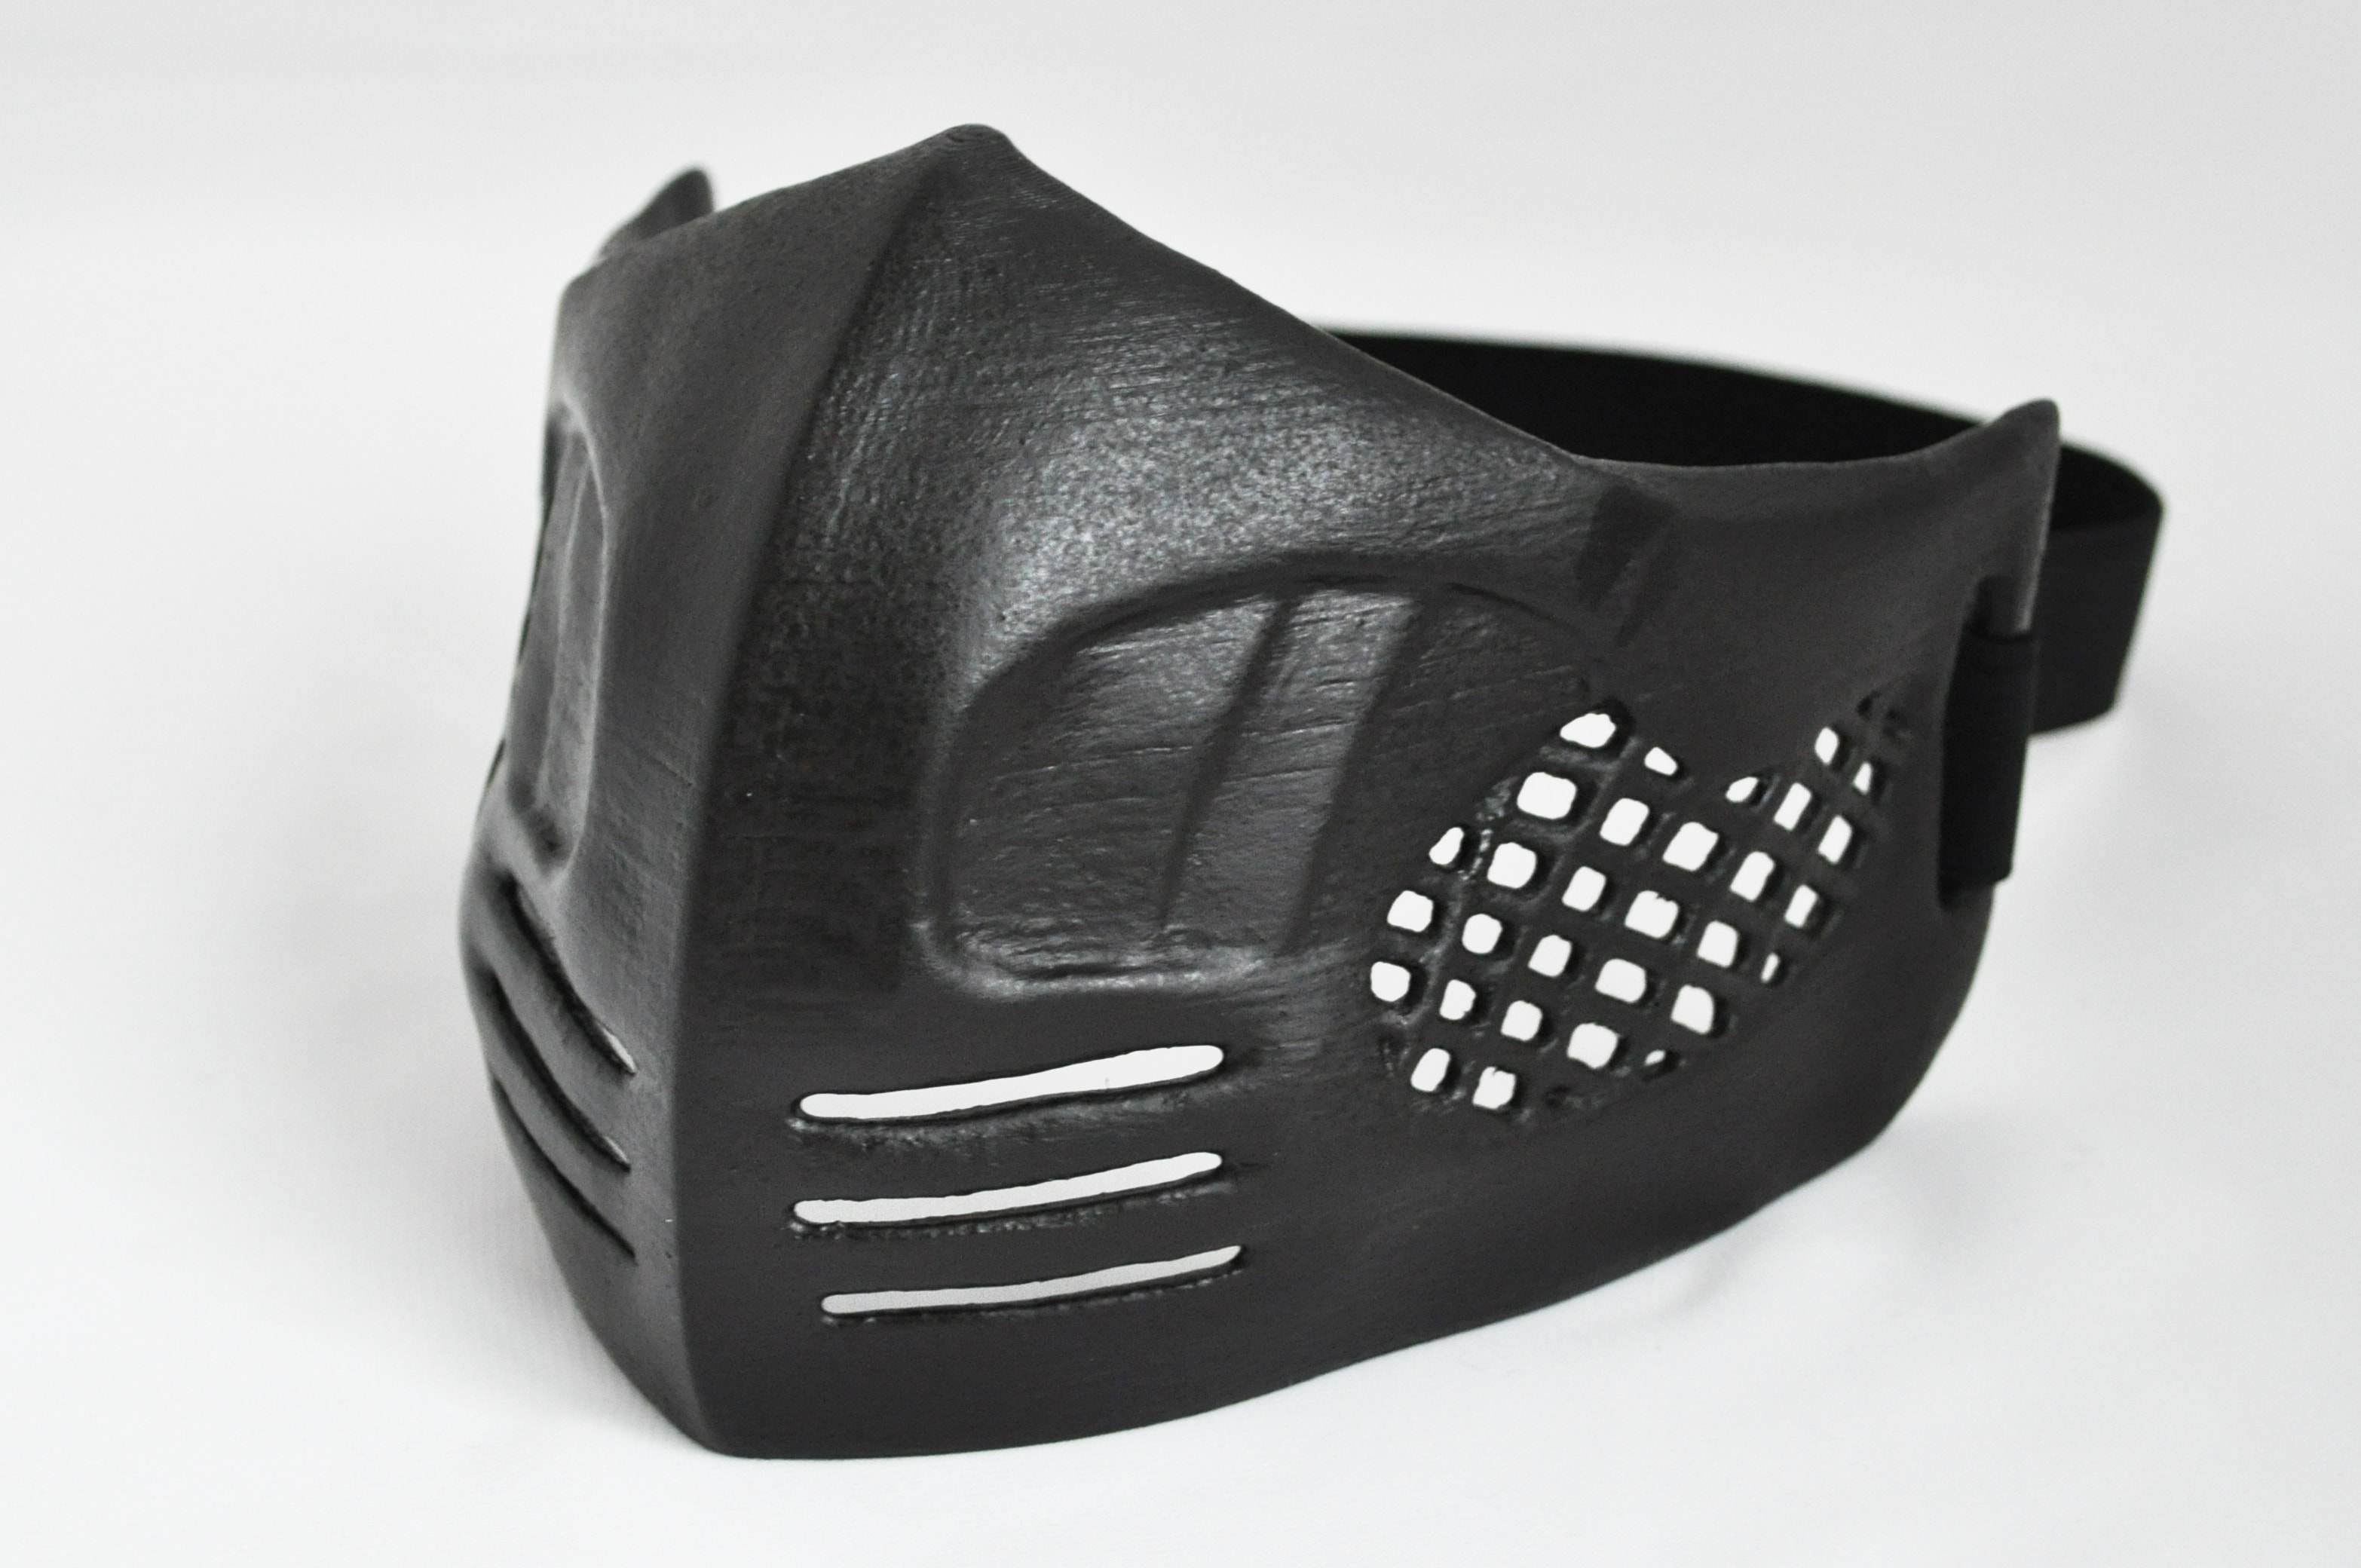 Scorpion Mask From Mk Cosplay Or Airsoft Mask Costumes From